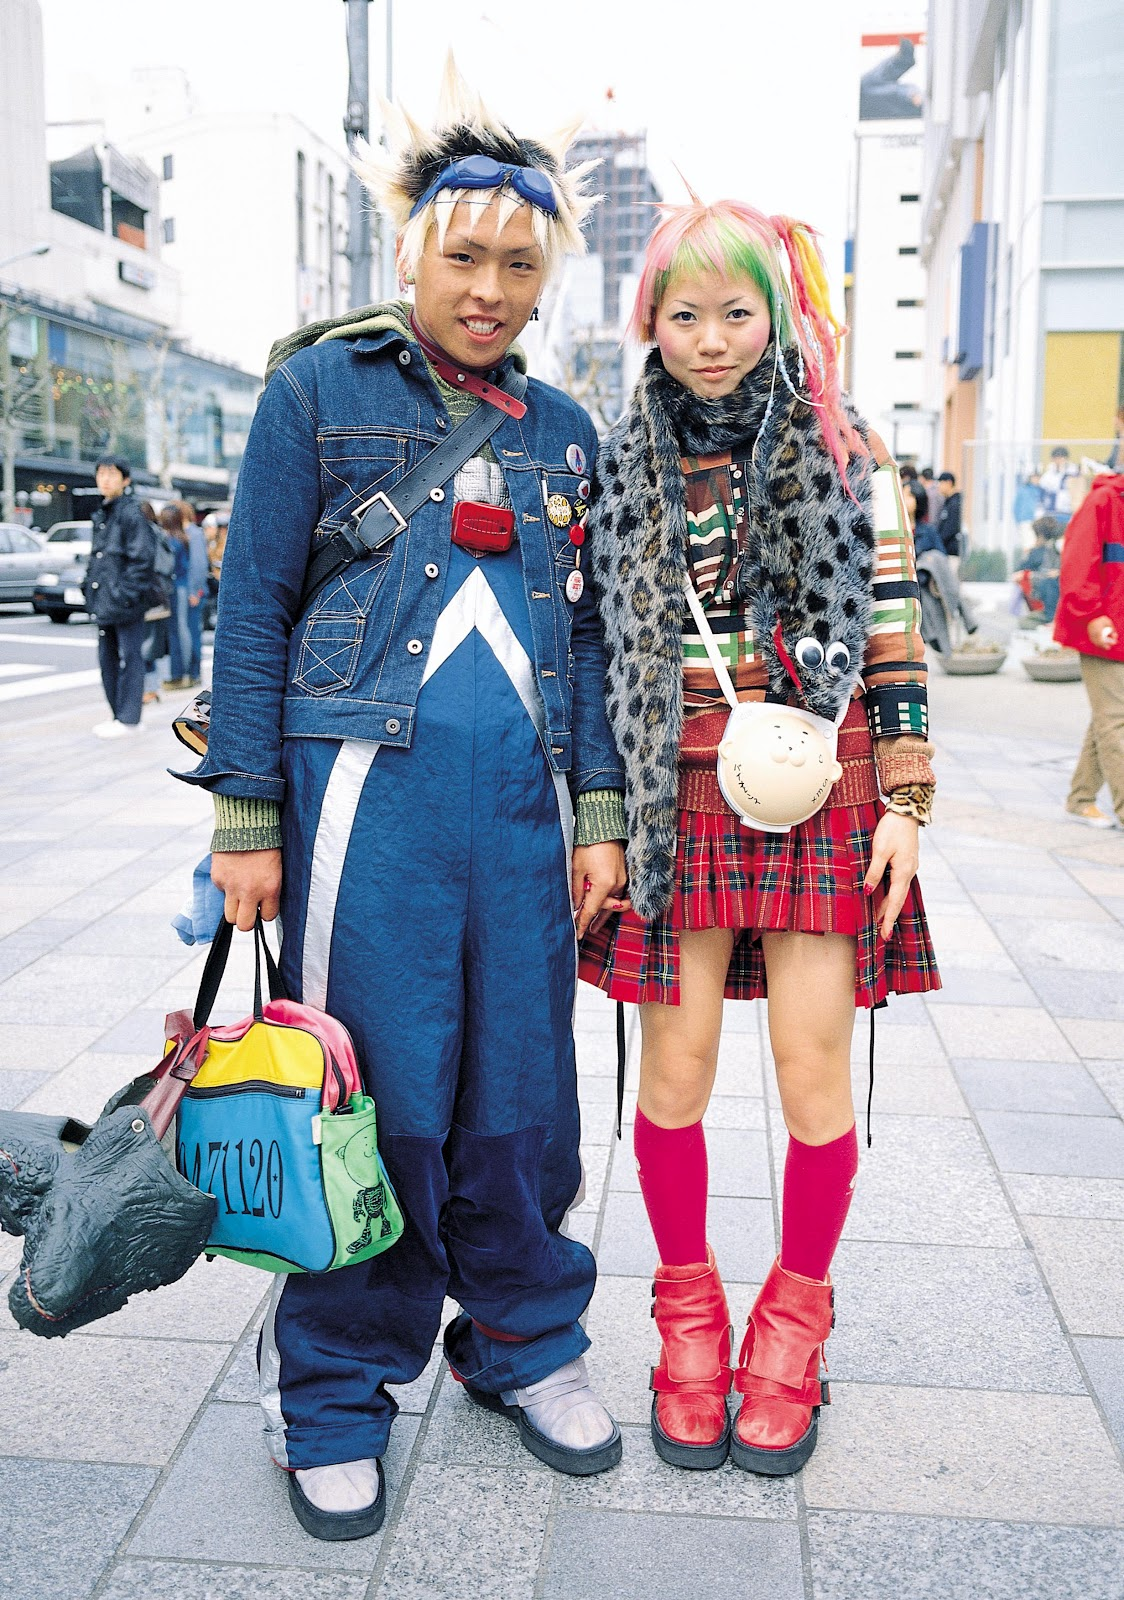 FRUiTS: Japanese Street Fashion at its Street-iest ...